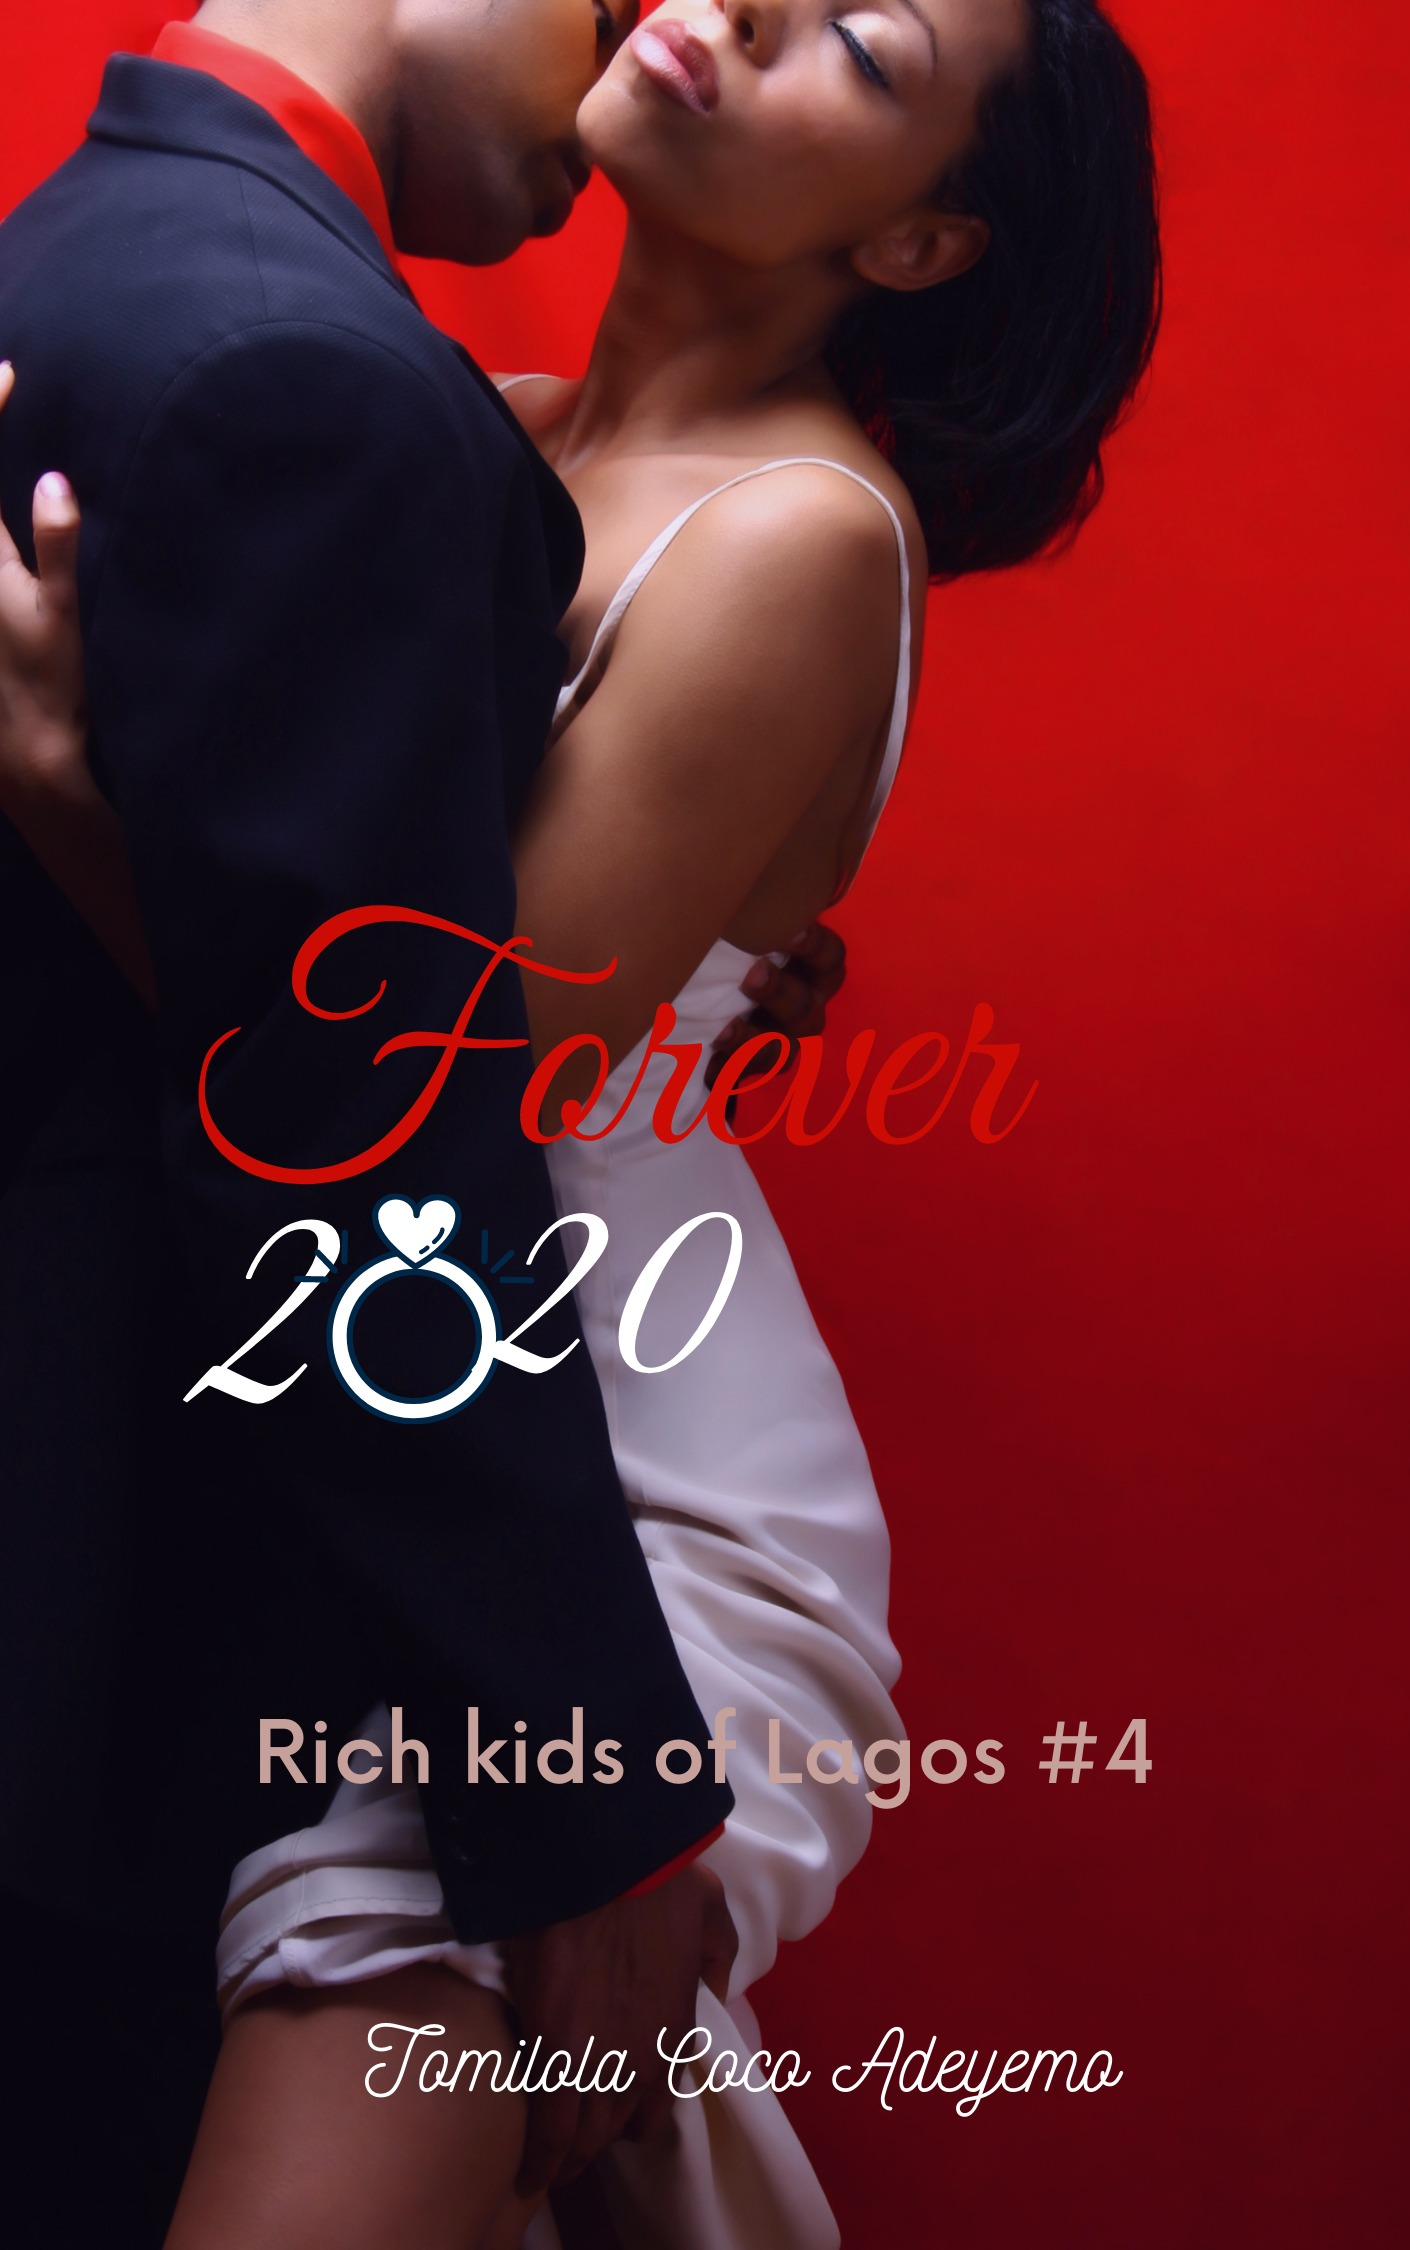 Forever 2020 [RICH KIDS OF LAGOS #4]